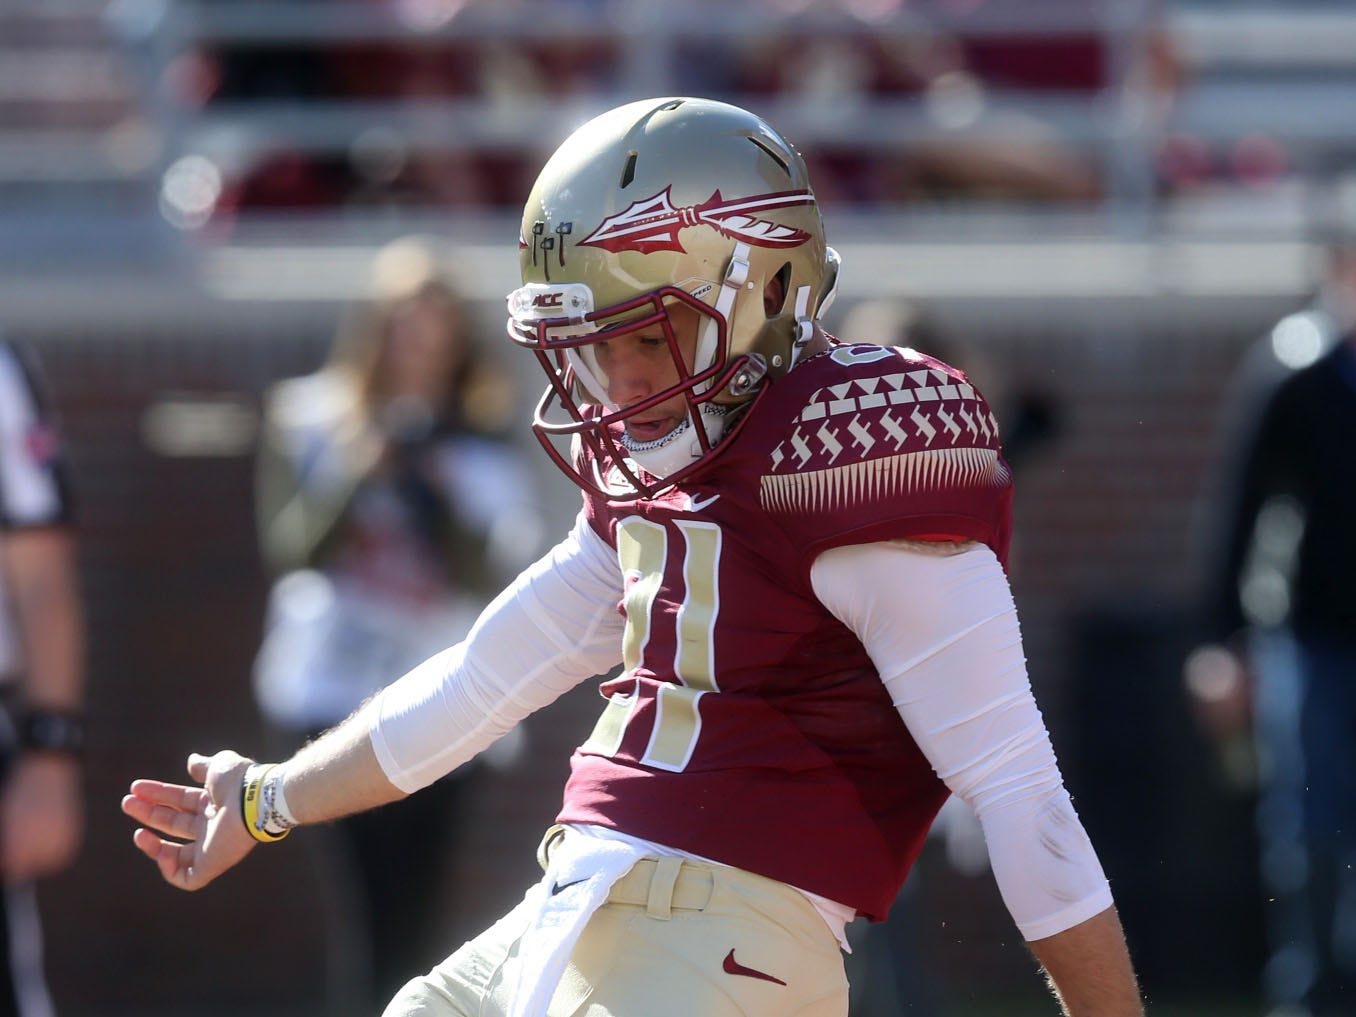 Florida State Seminoles punter Logan Tyler (21) as he punts the ball as the Florida State Seminoles take on the Clemson Tigers in college football at Doak S. Campbell Stadium on Saturday, Oct. 27, 2018.